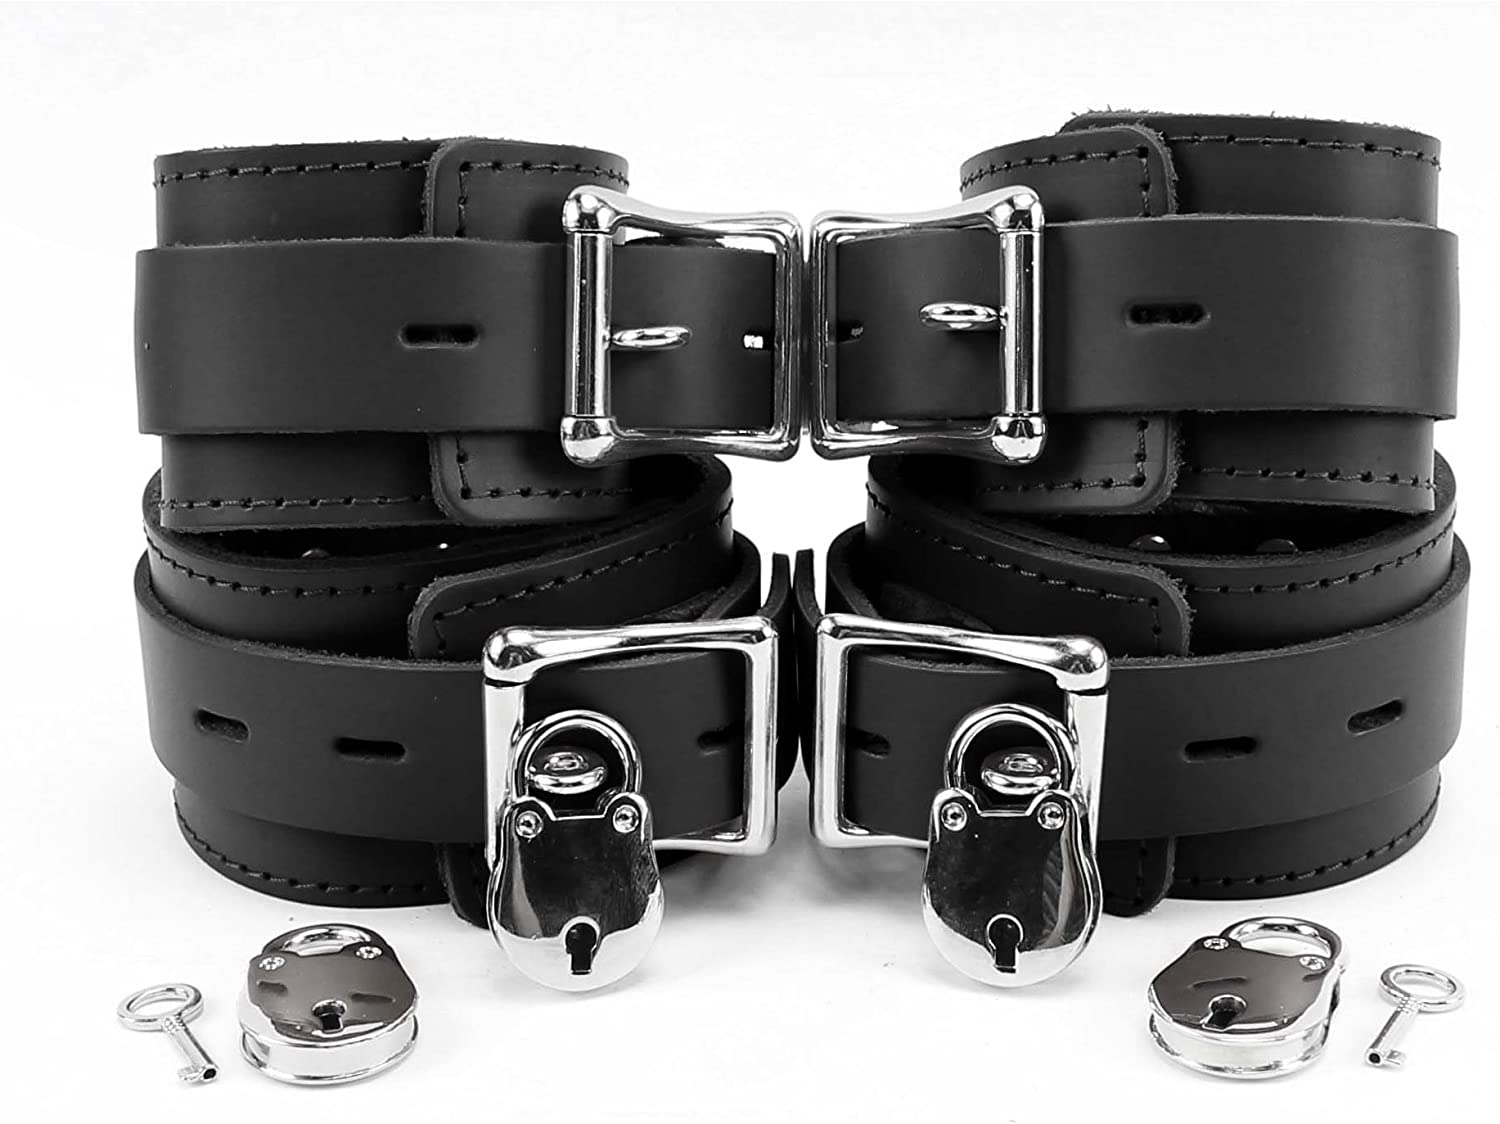 B07D3ZHRSD Atlanta Wrist and Ankle Cuffs Combo Premium Genuine Leather 71a51KmiWWL